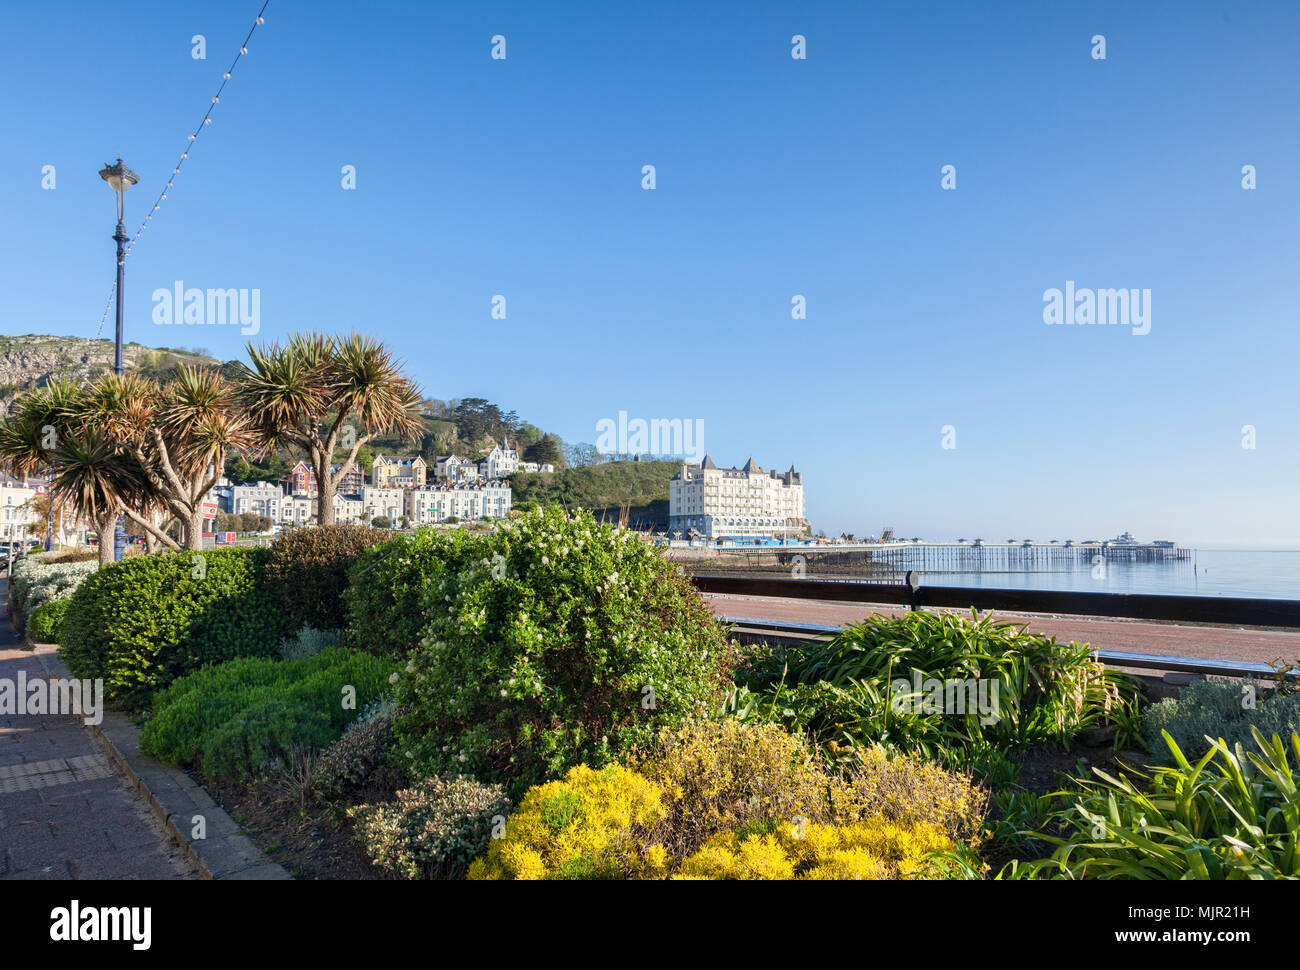 Gardens and pier on Llandudno seafront on sunny May Day weekend. - Stock Image